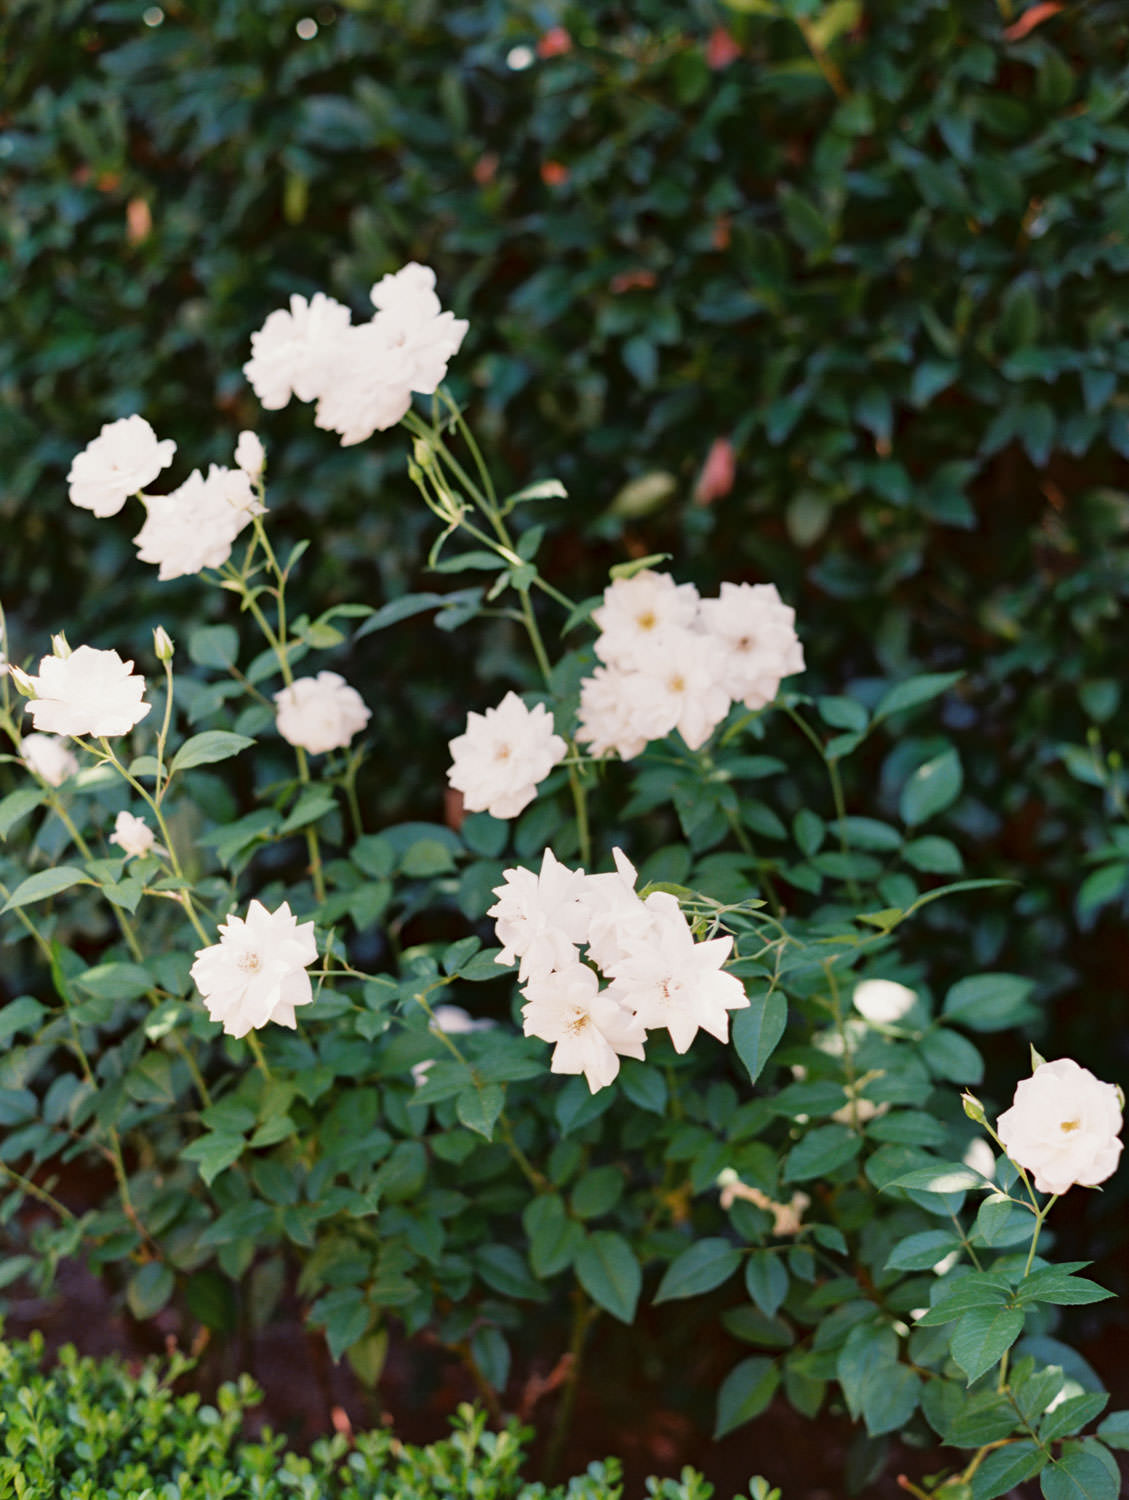 White garden roses in front of a greenery hedge. Wedding at Rancho Bernardo Inn. Film photo by Cavin Elizabeth Photography